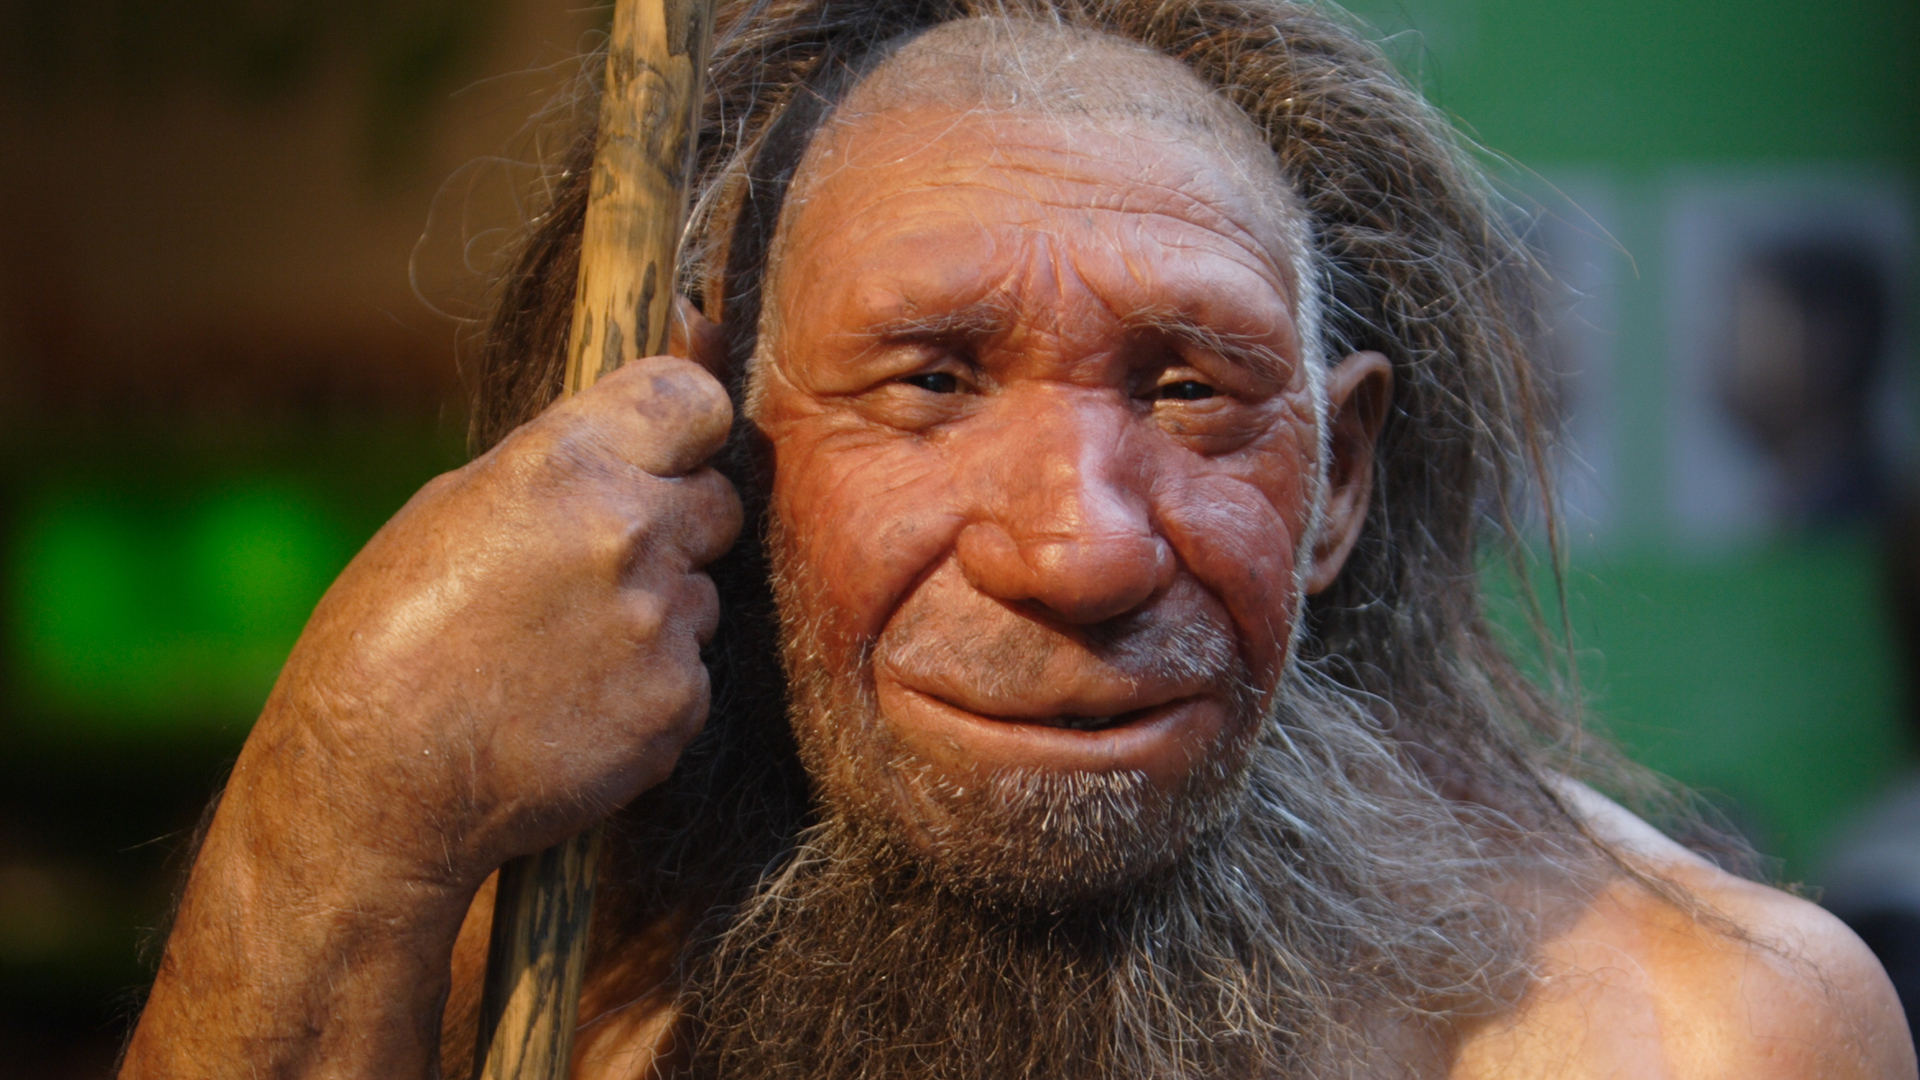 How much Neanderthal DNA do humans have? What does it mean?